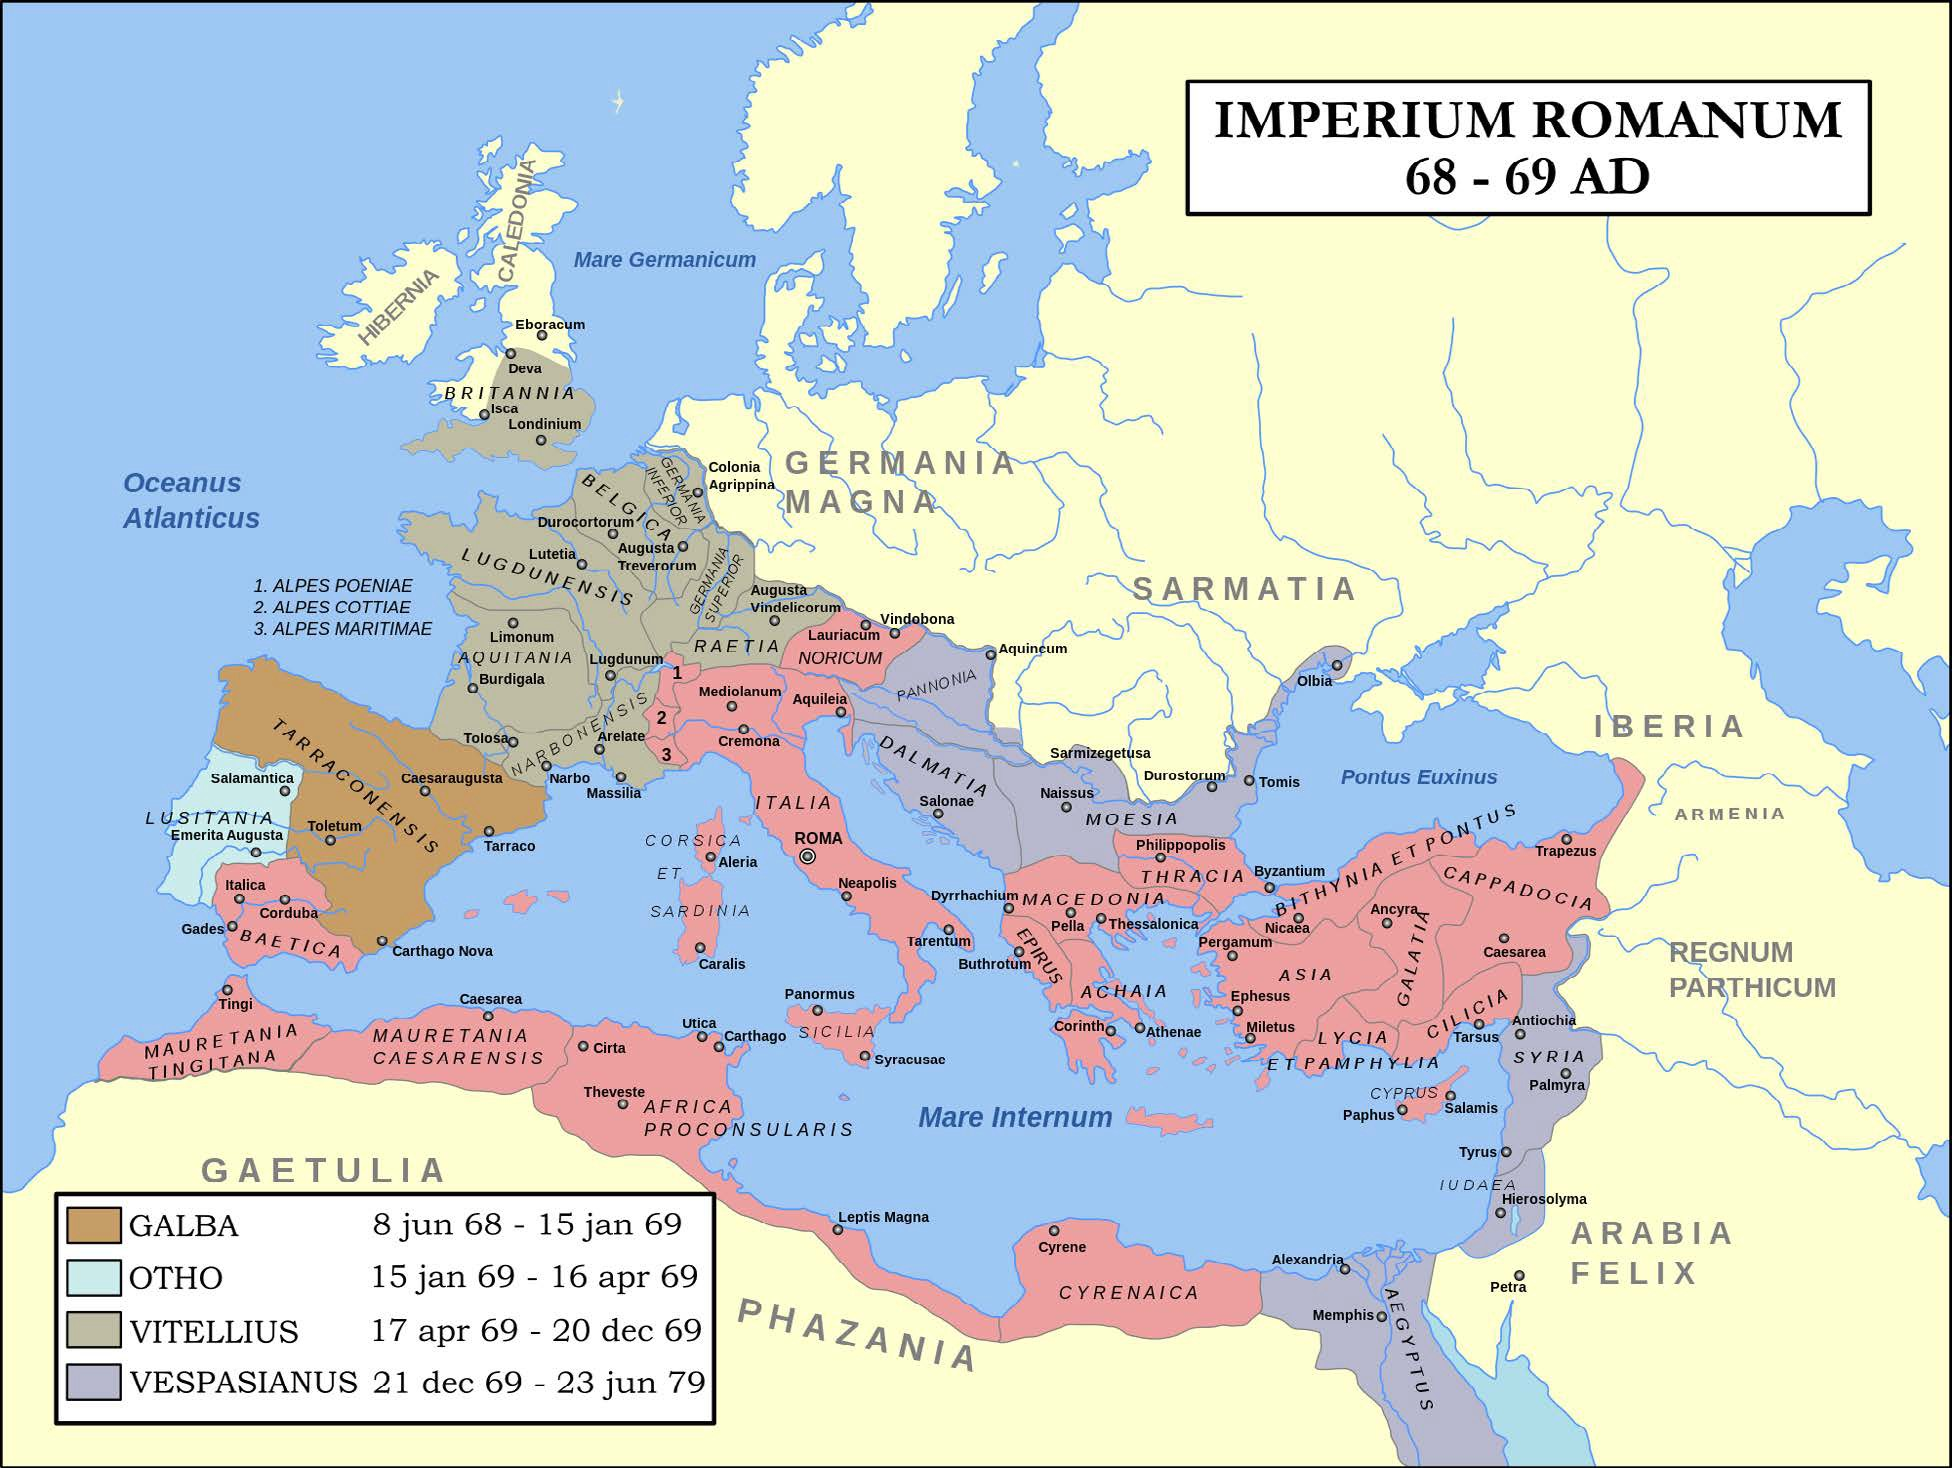 Map of the Roman Empire 68-69 CE